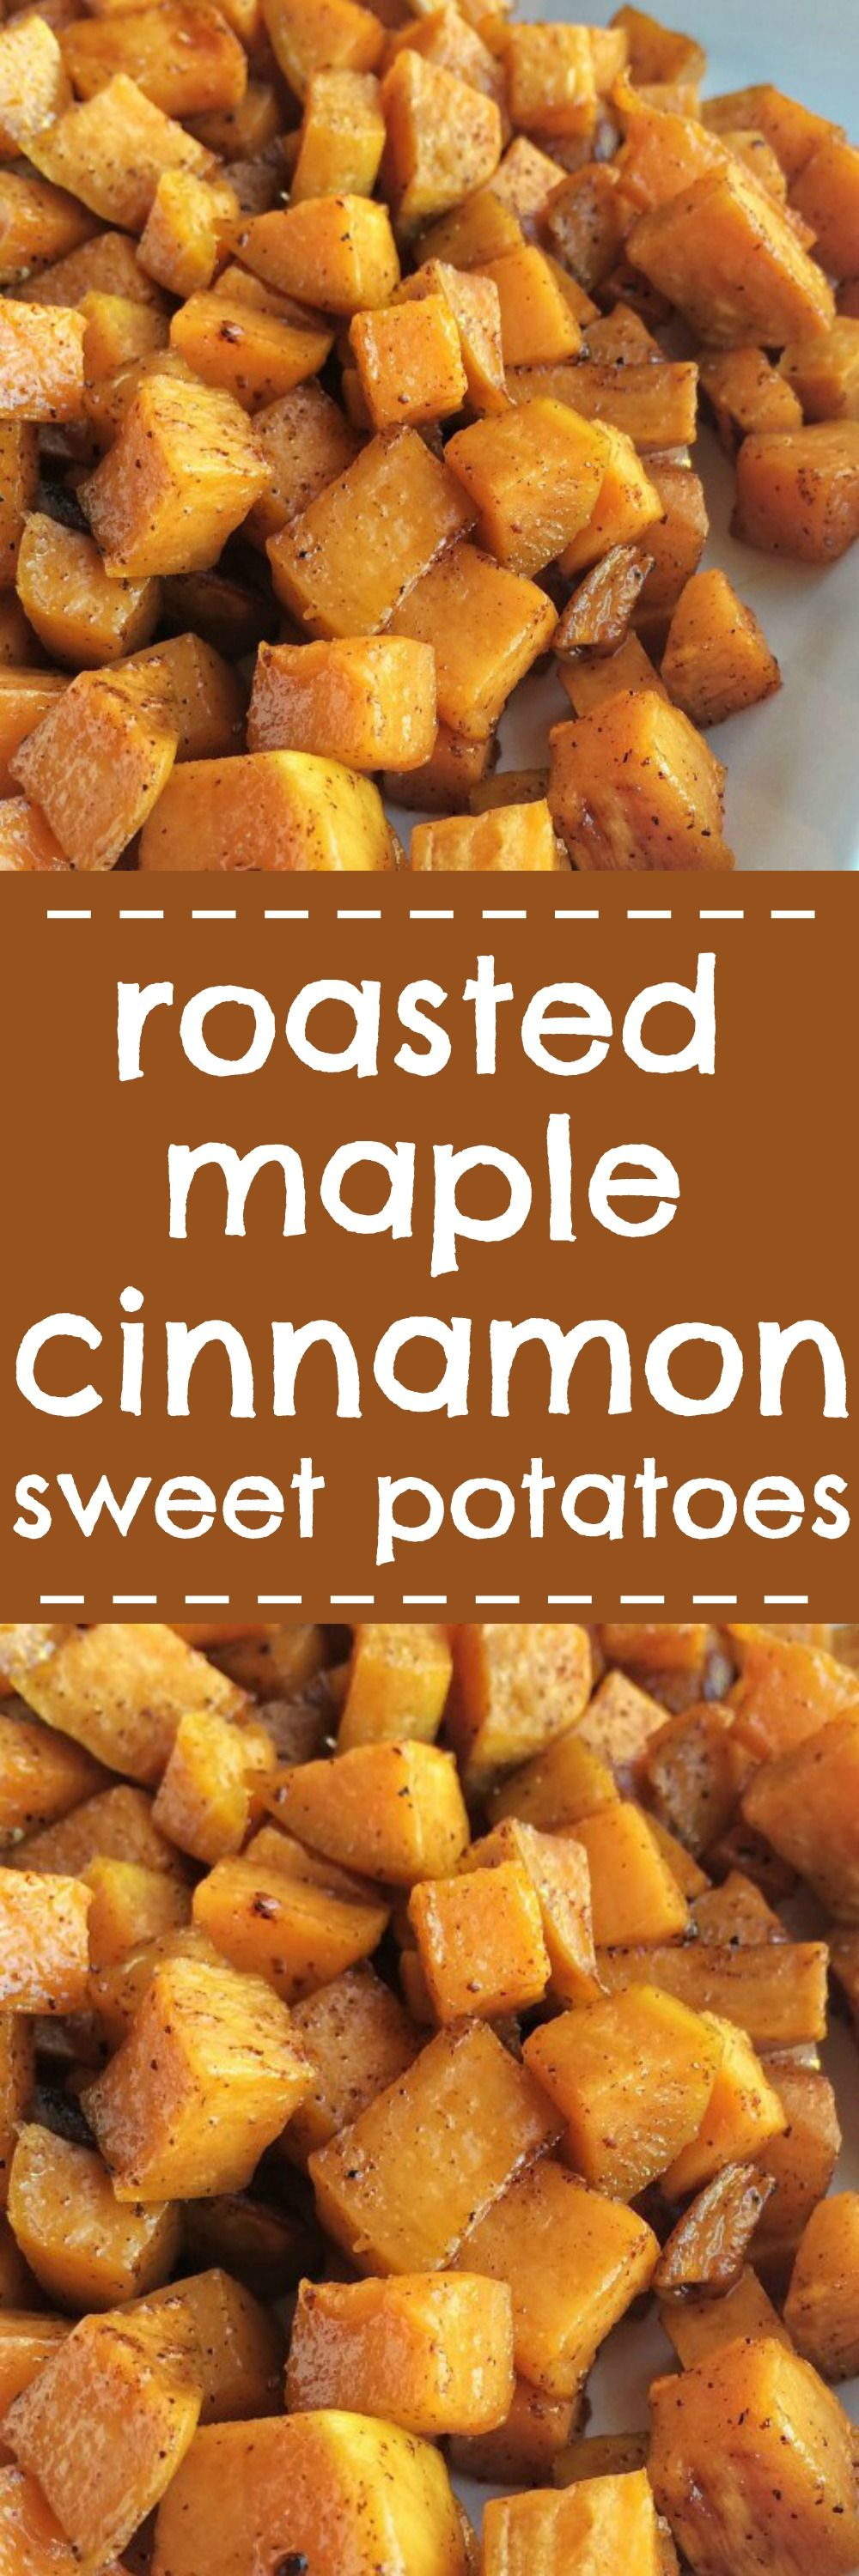 Roasted maple cinnamon sweet potatoes are a healthier side dish for dinner or Th…